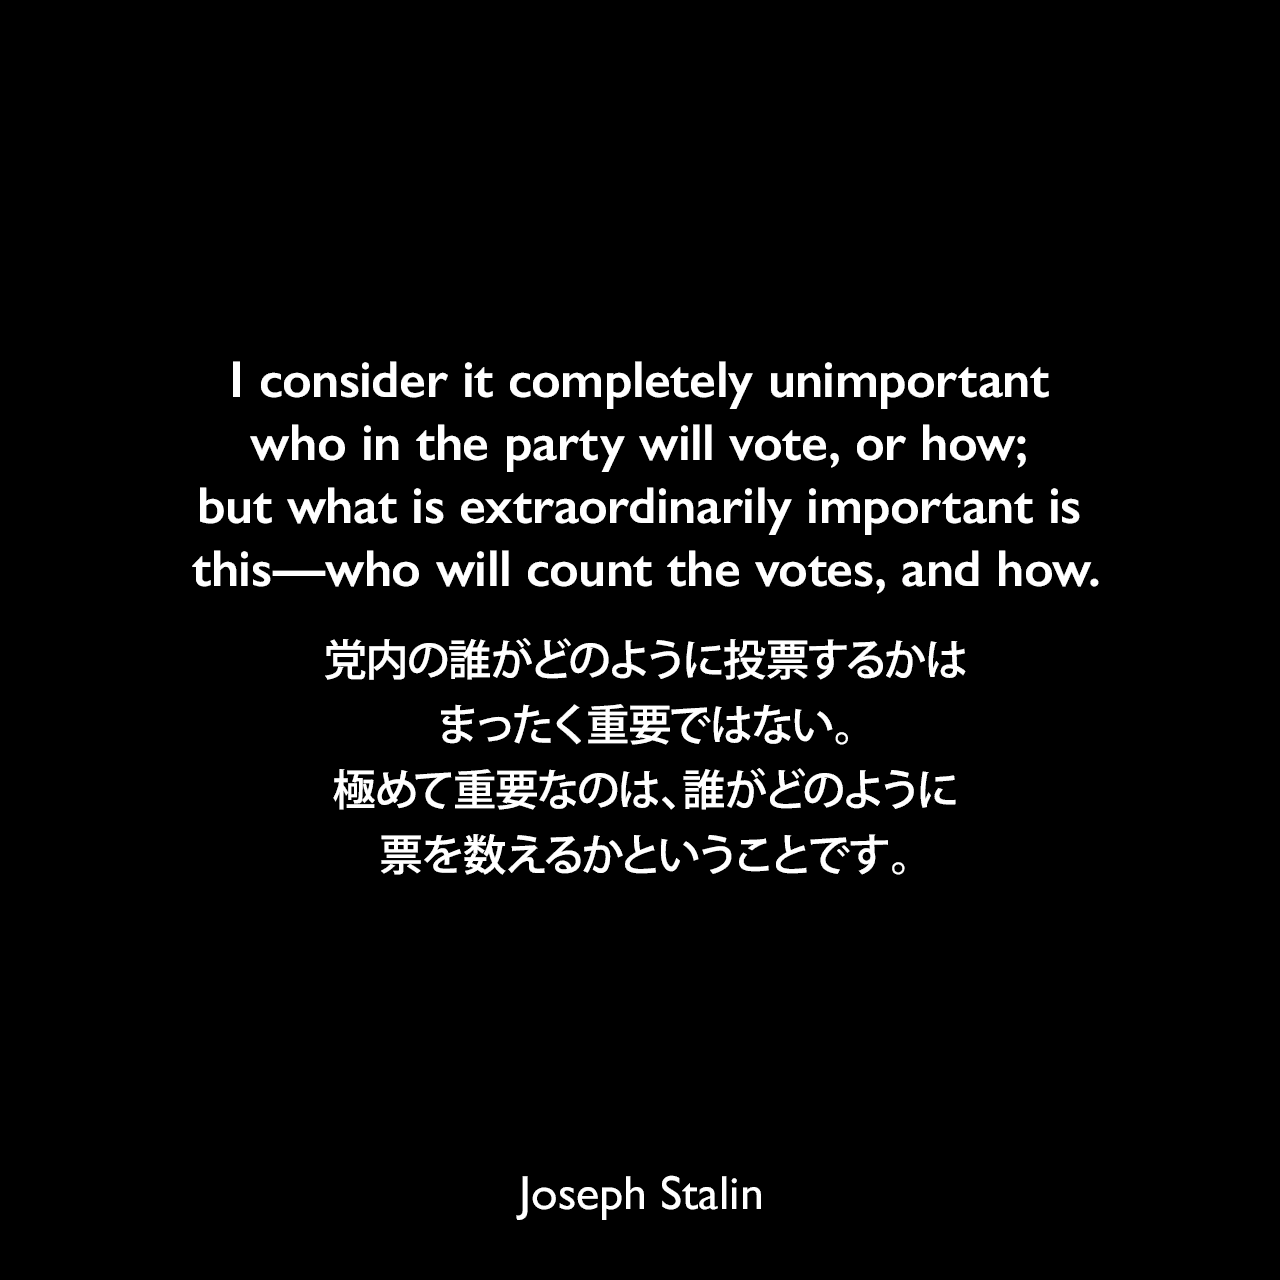 I consider it completely unimportant who in the party will vote, or how; but what is extraordinarily important is this—who will count the votes, and how.党内の誰がどのように投票するかはまったく重要ではない。極めて重要なのは、誰がどのように票を数えるかということです。- スターリンの元秘書 ボリス・バジャーノフの回顧録よりJoseph Stalin